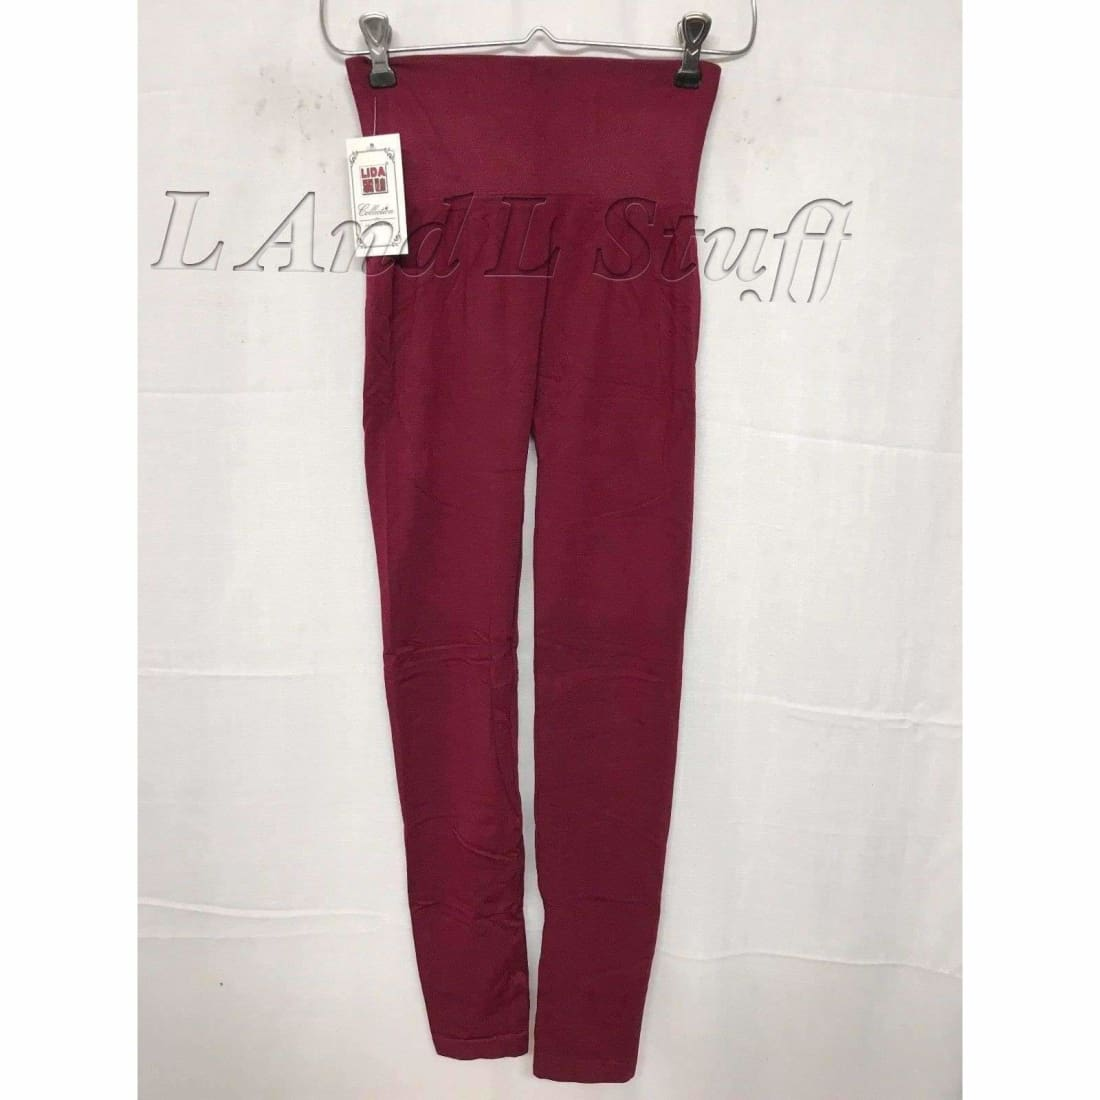 Lida Womens High Waist Leggings One Size Burgundy Leggings